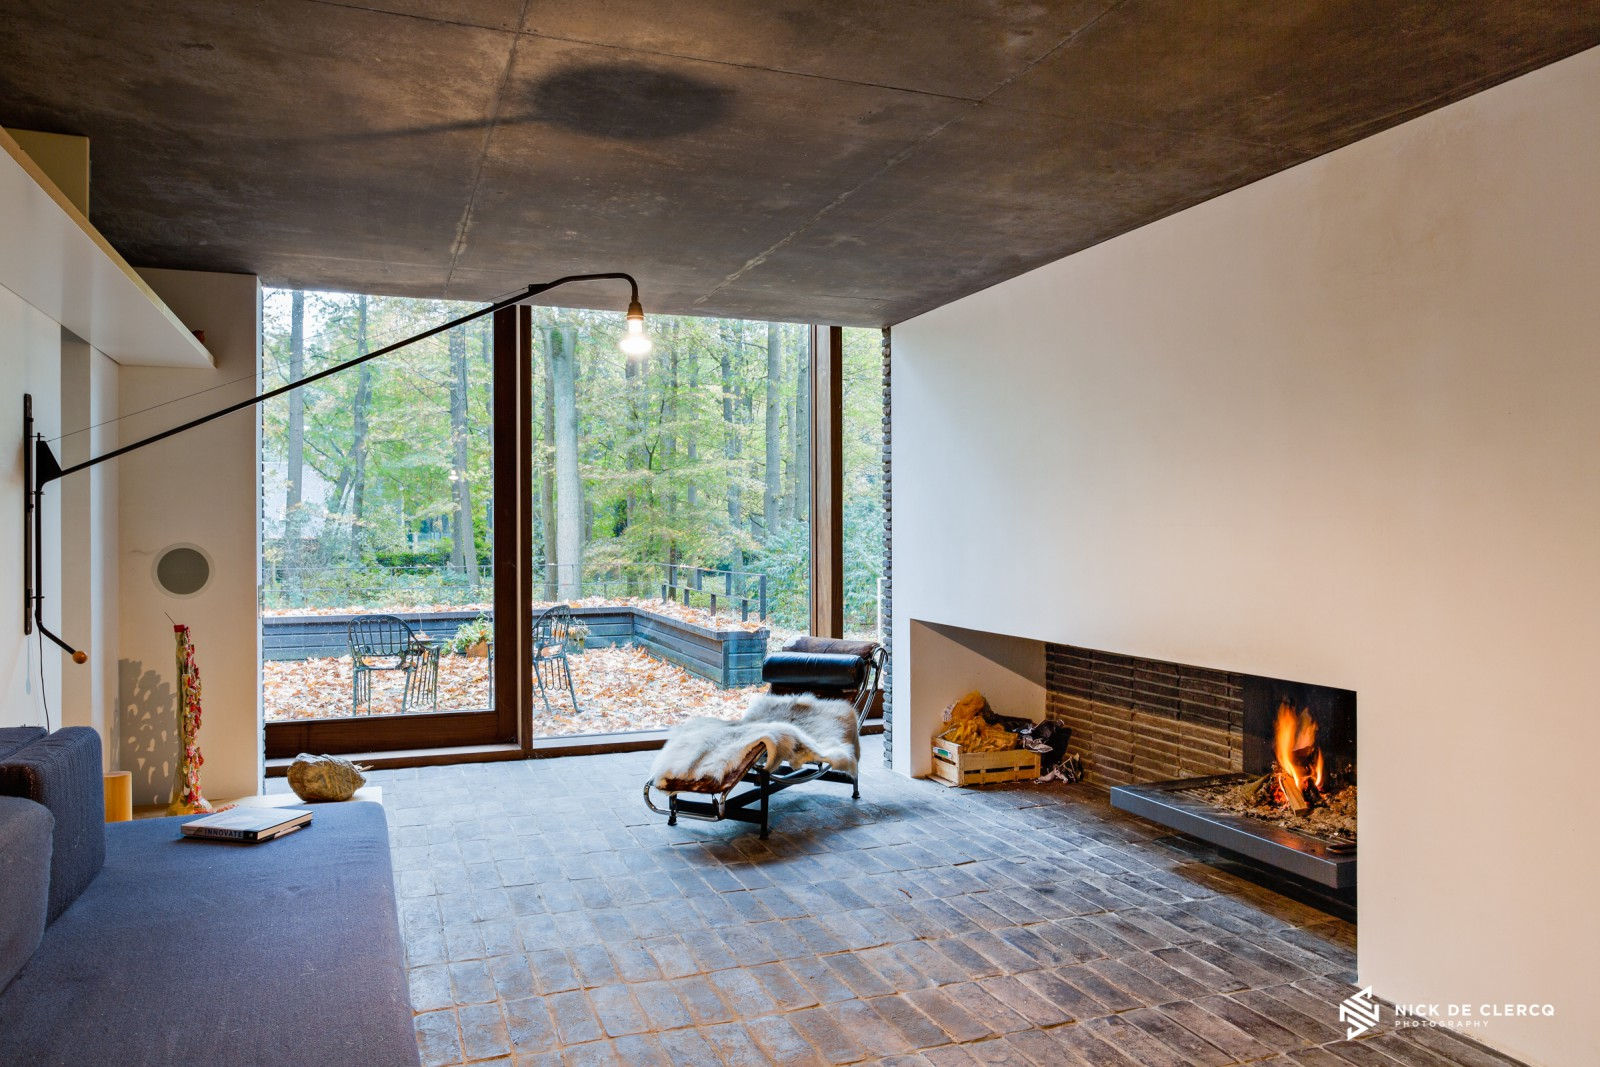 Wabi sabi architecture nick de clercq photography - Living room definition architecture ...